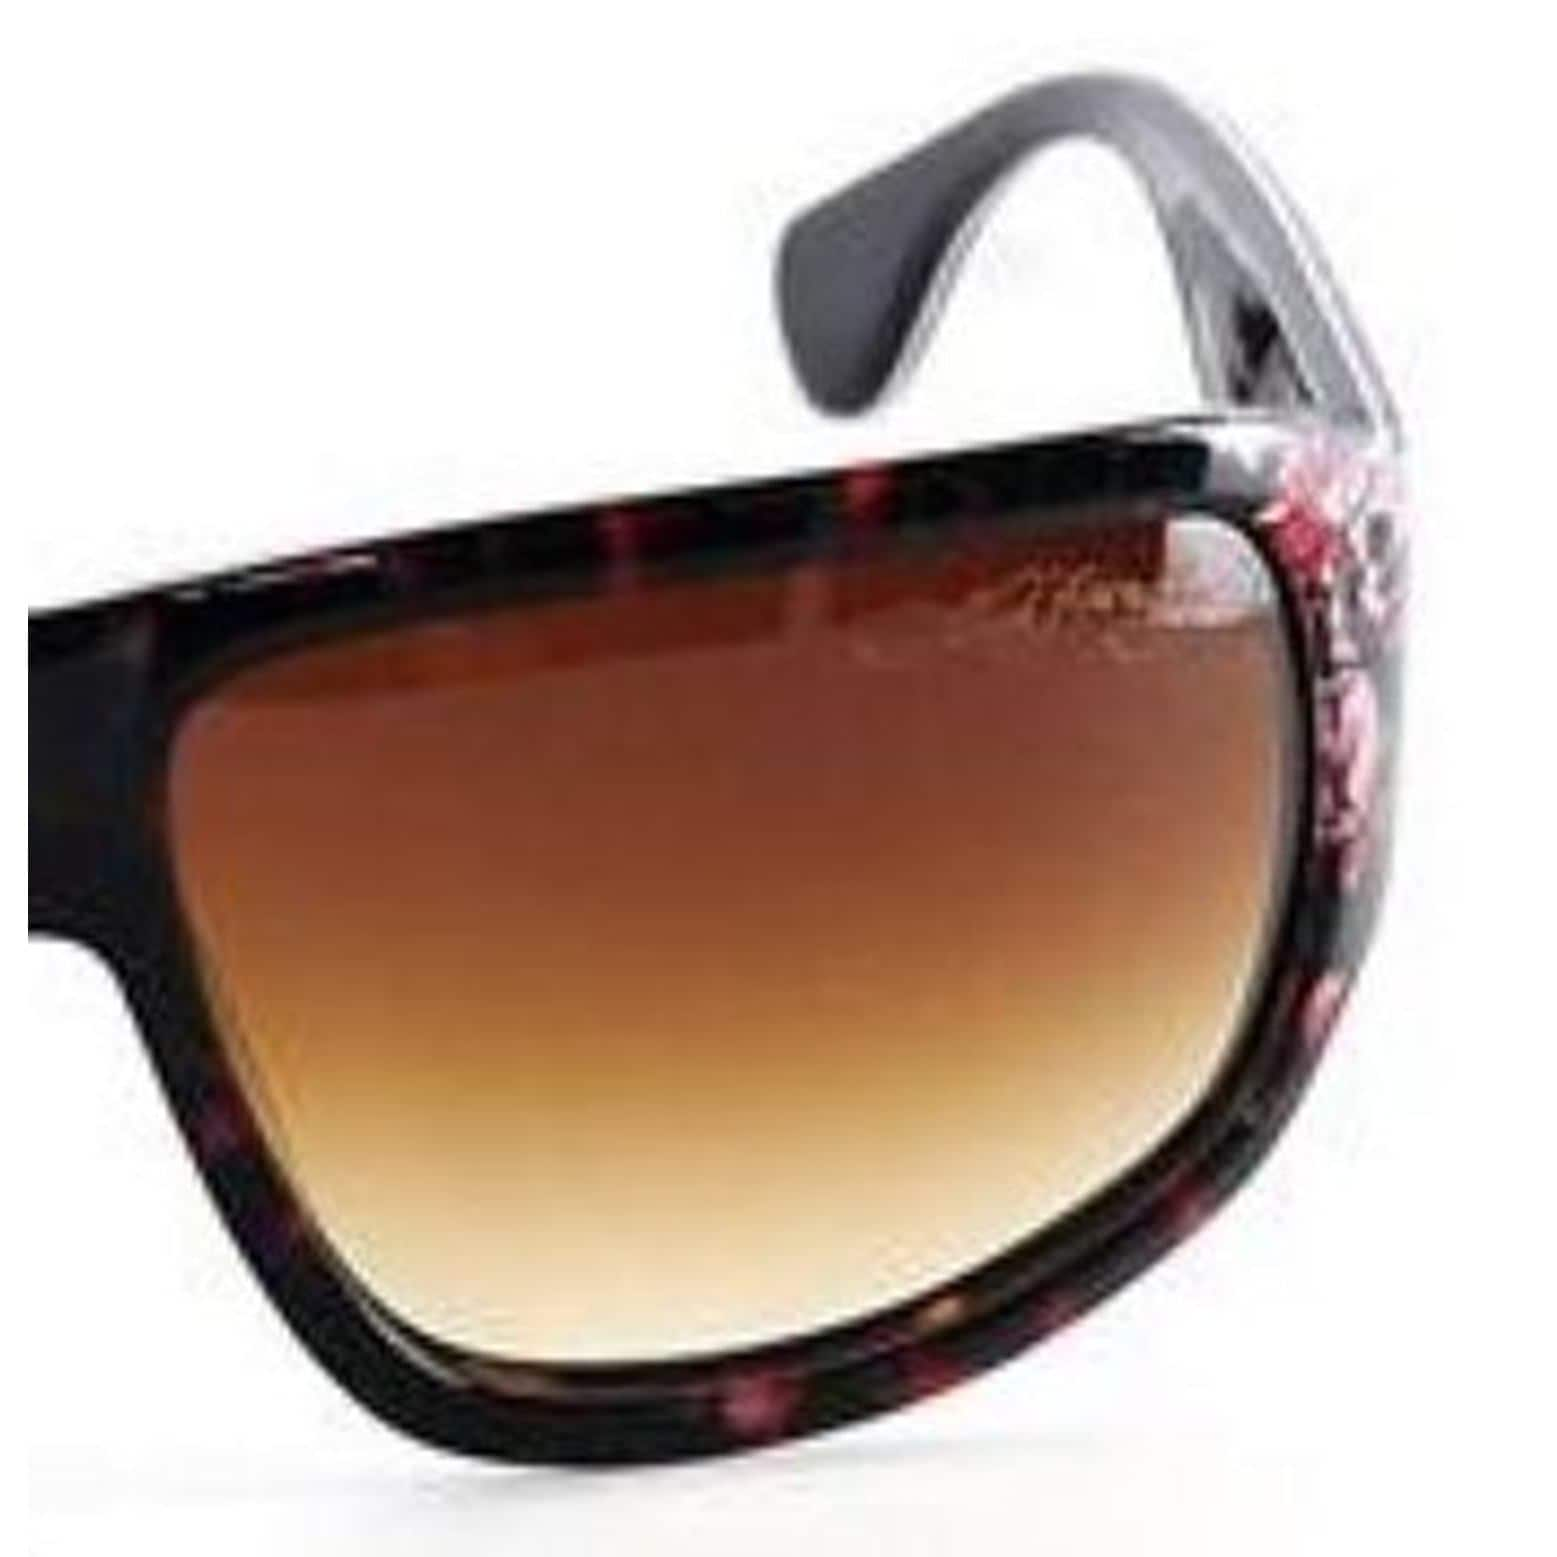 312500d992 Shop Ed Hardy Las Vegas Rock Tortoise Sunglasses - Free Shipping Today -  Overstock.com - 11638008